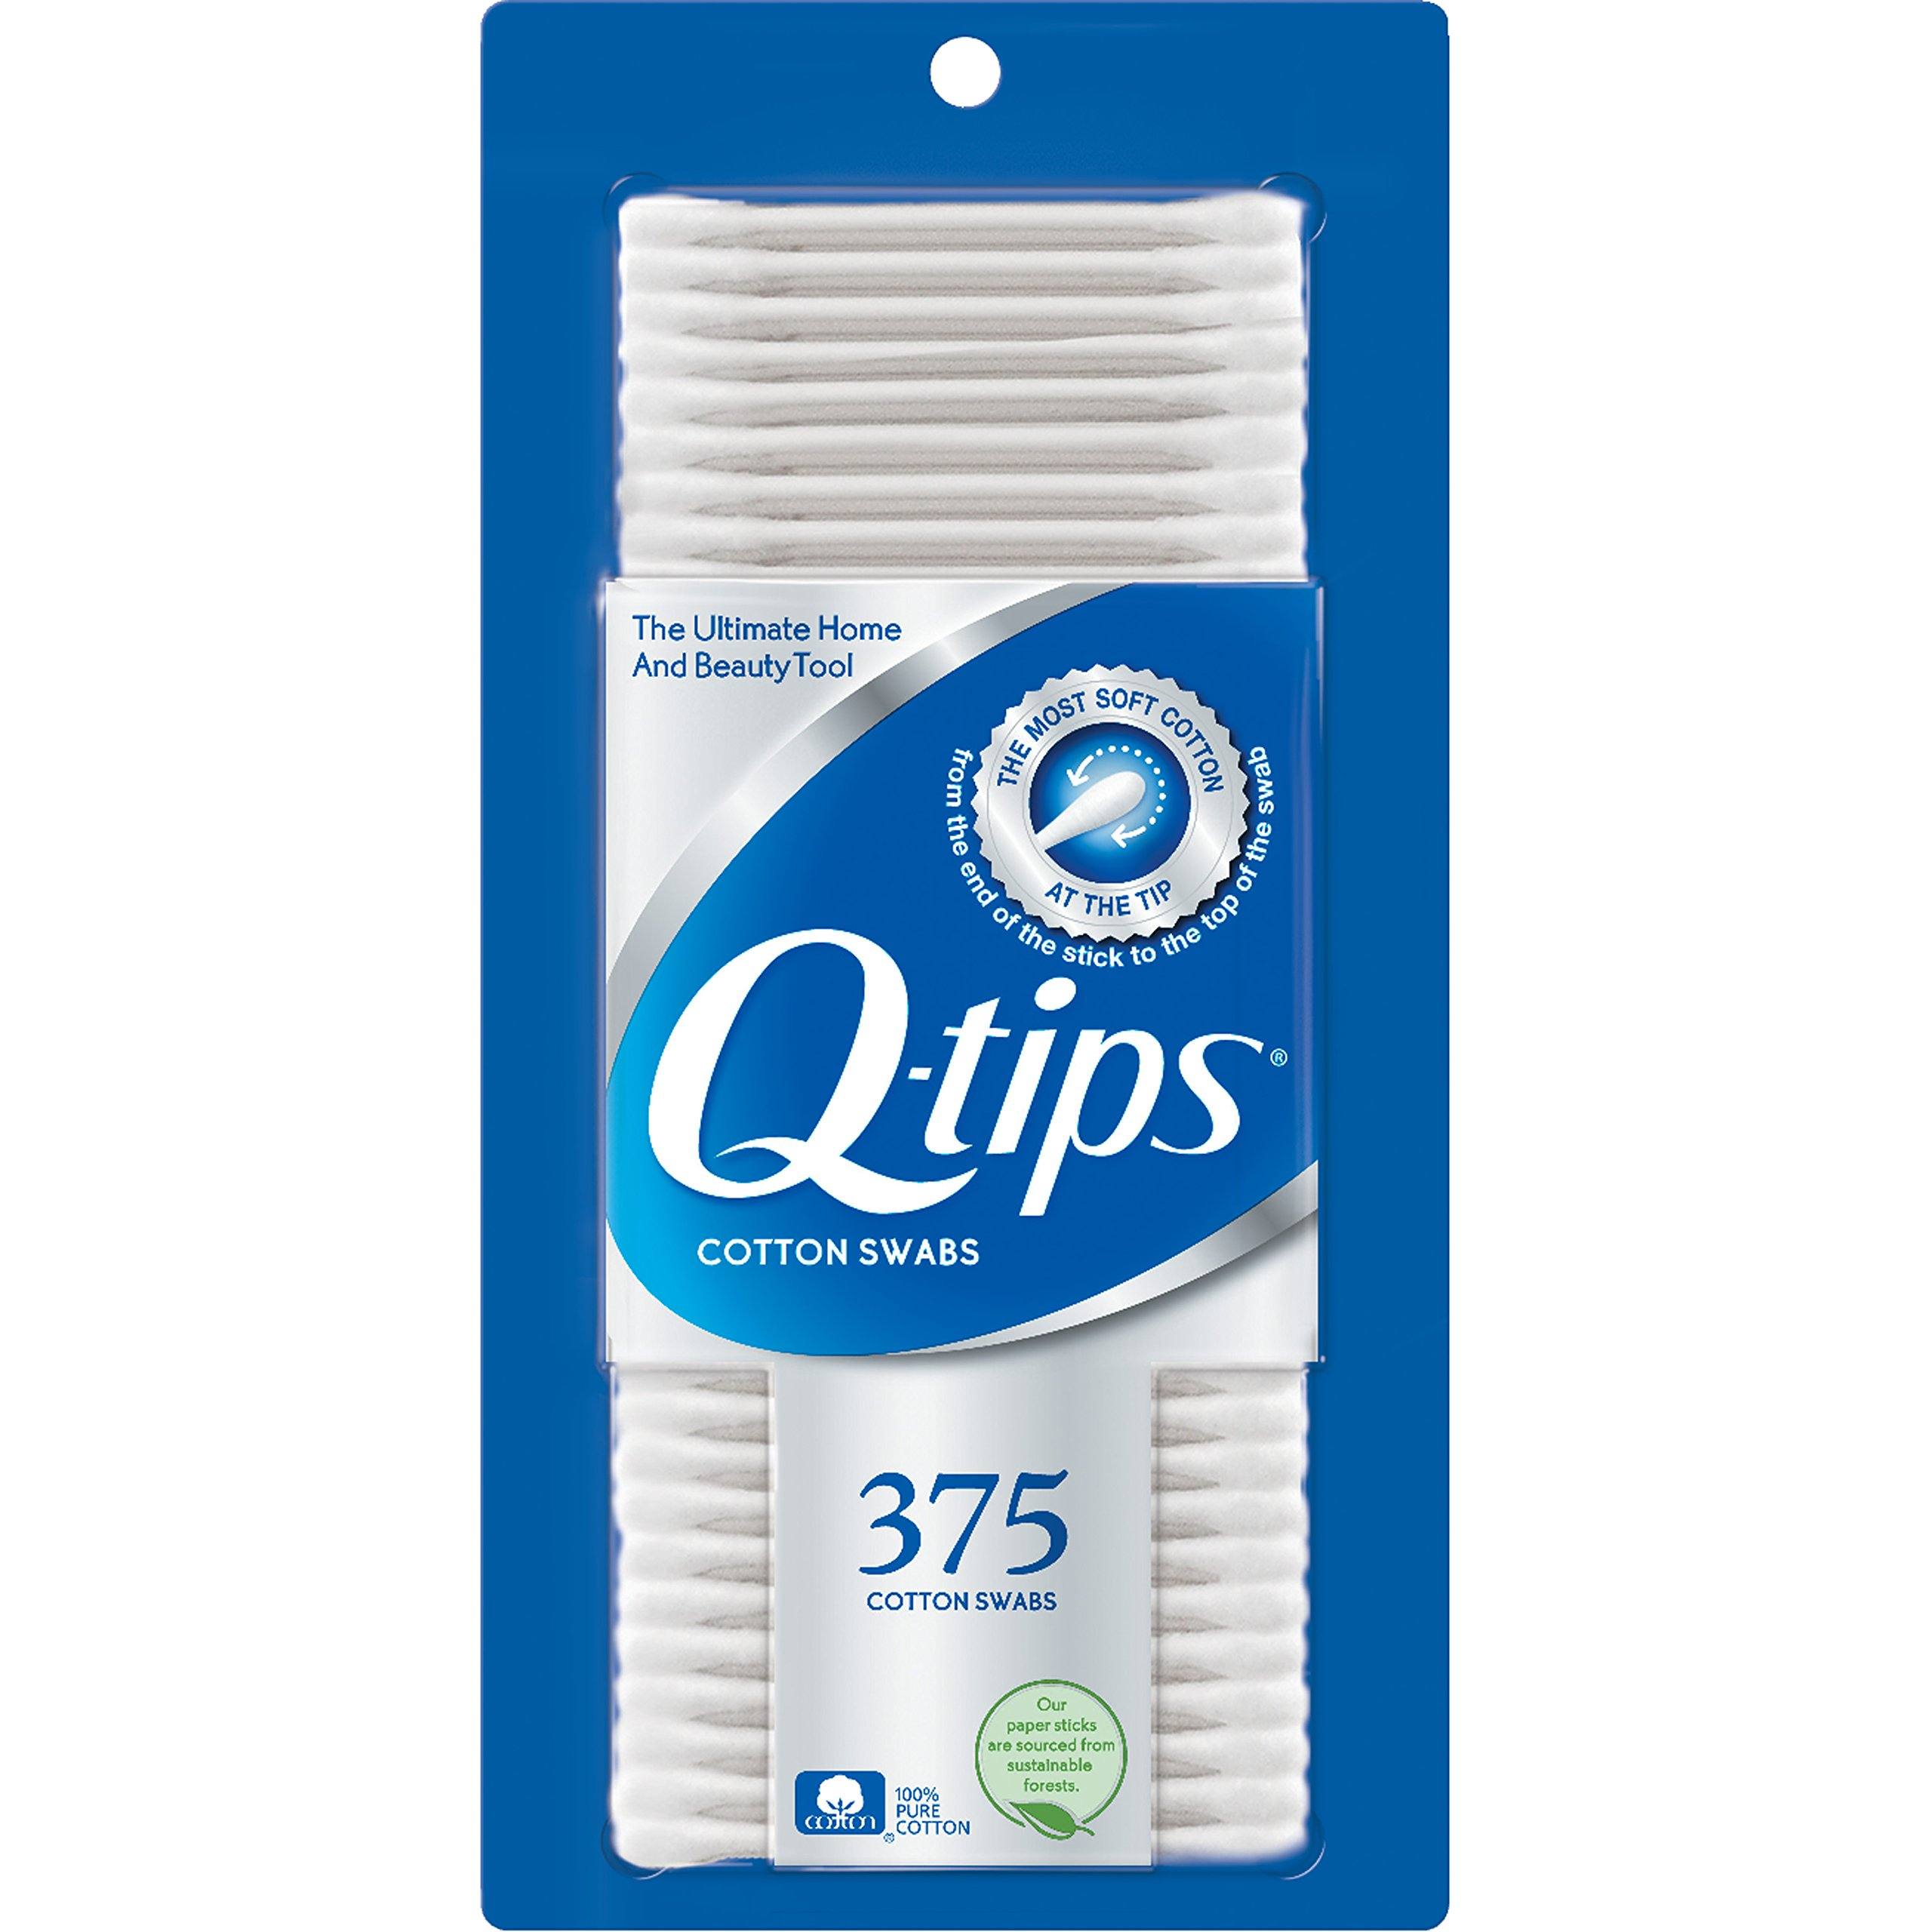 Q-tips Cotton Swabs, 375 ct